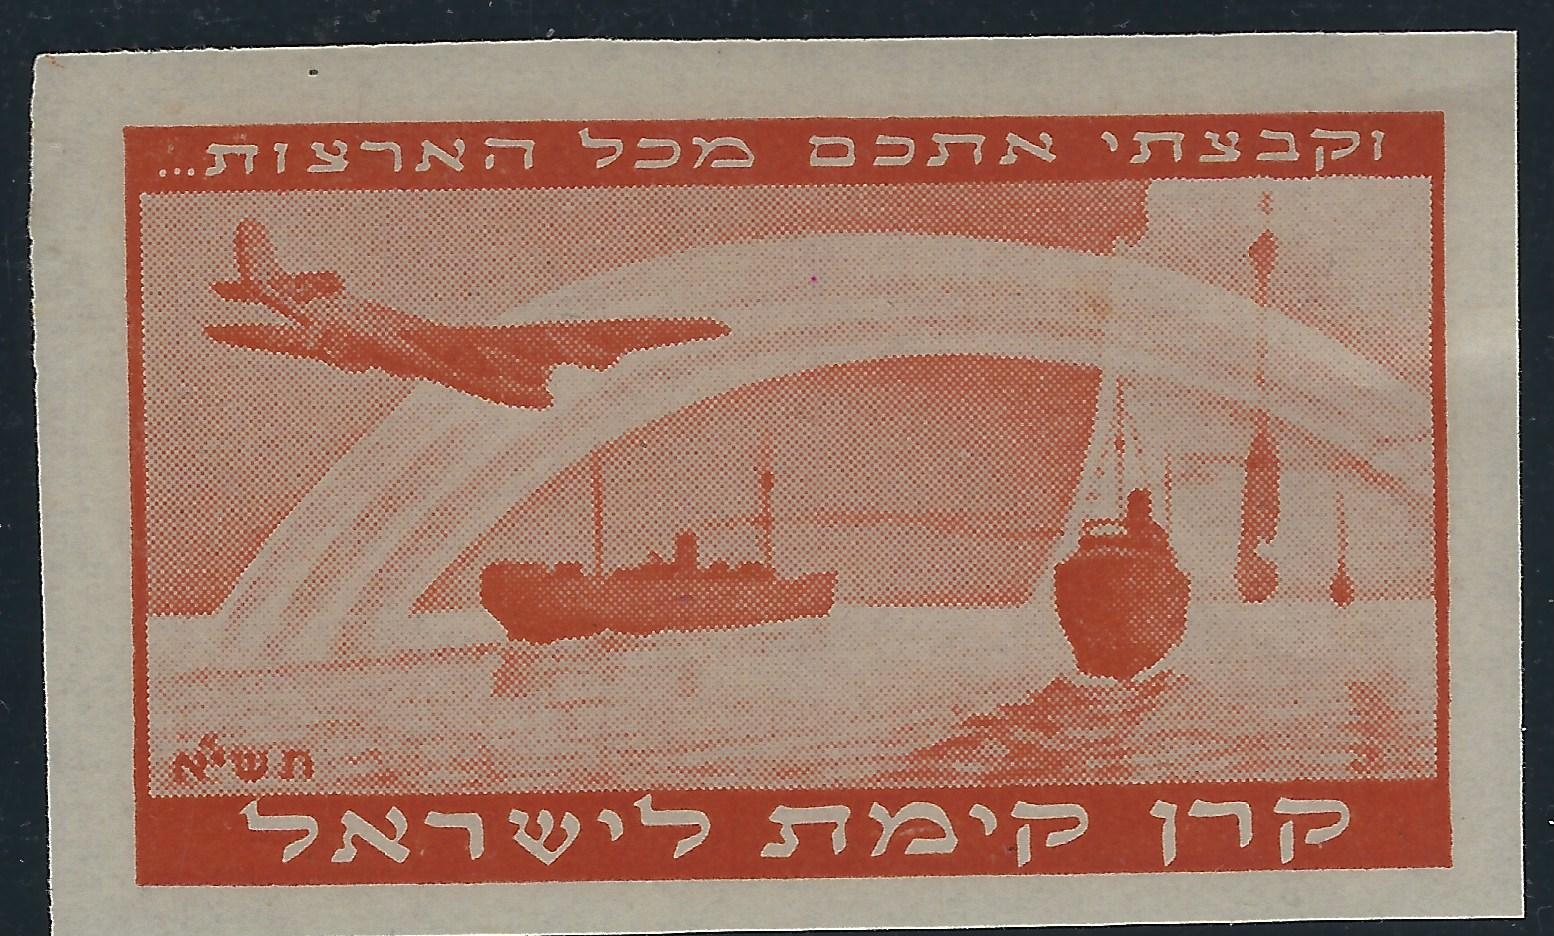 Lot 8 - judaica JNF labels & stamps -  Negev Holyland 93nd Holyland Postal Bid Sale